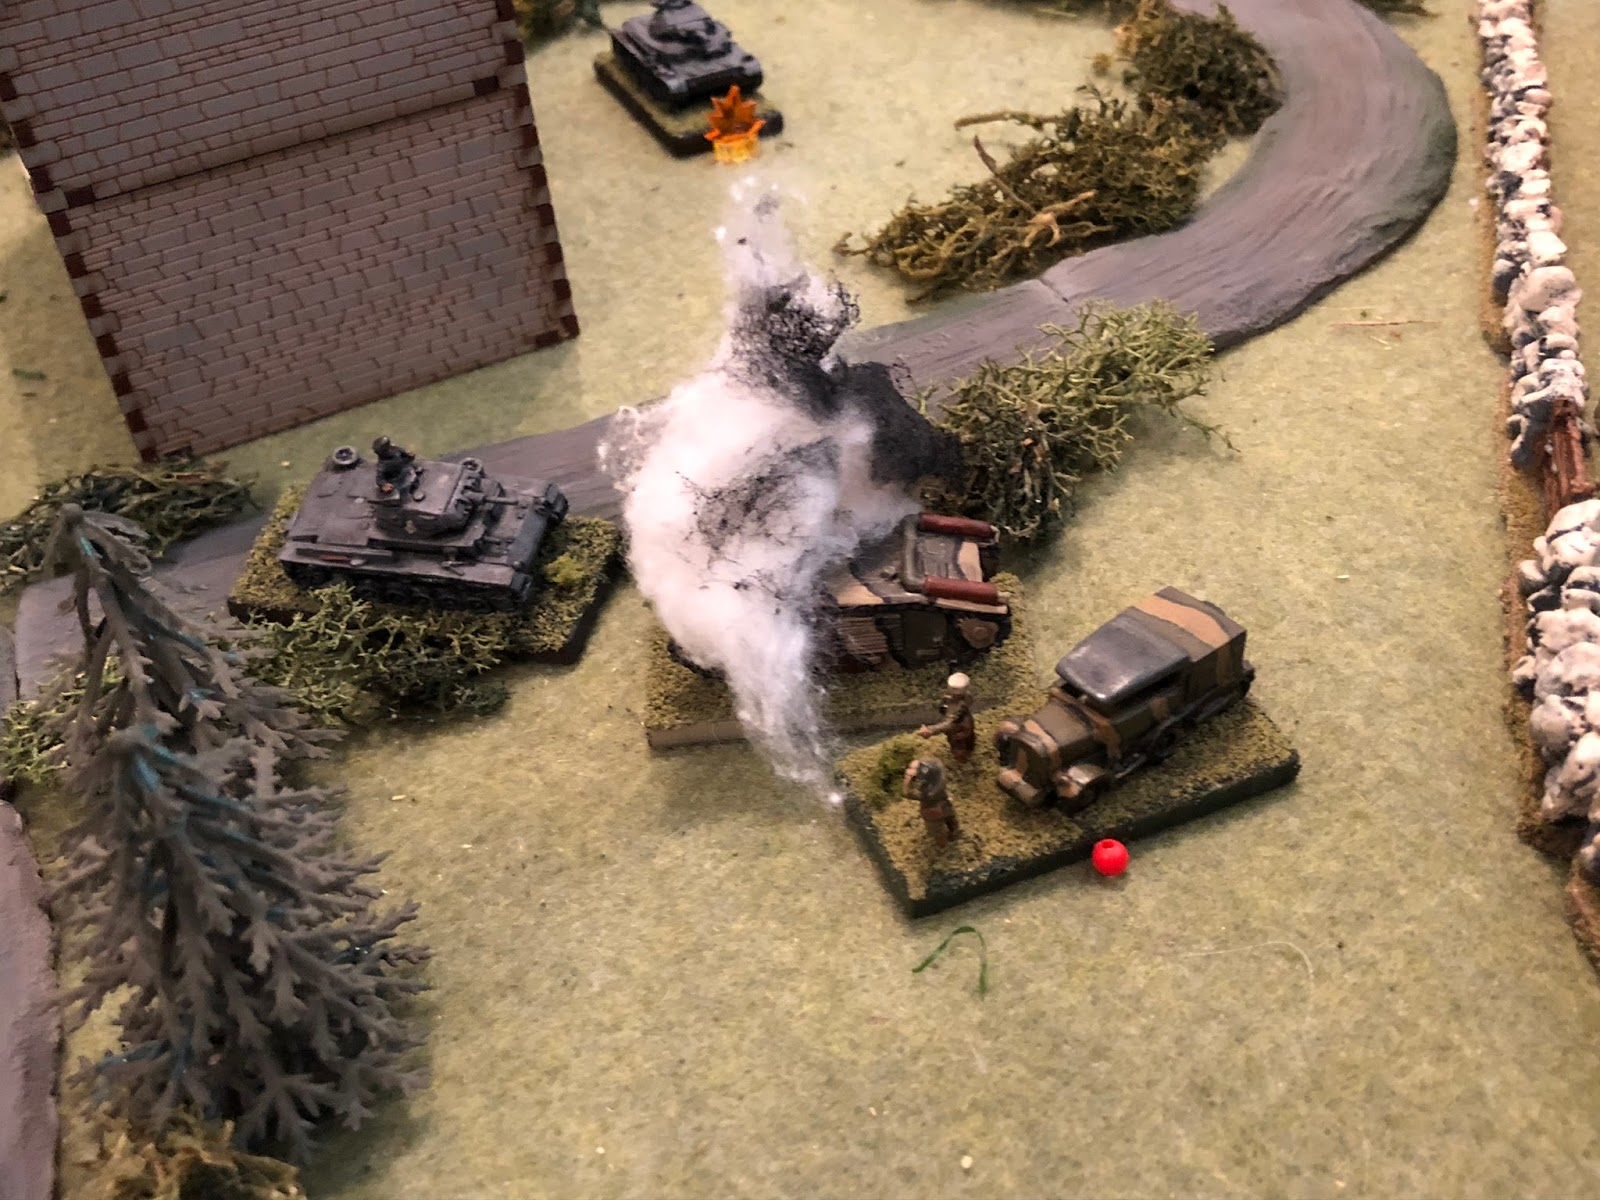 When suddenly the massive French tank explodes!!!  And with that, the fight is over.  The French put up quite the spirited defence, but when their tank exploded it snatched the wind from their sails.